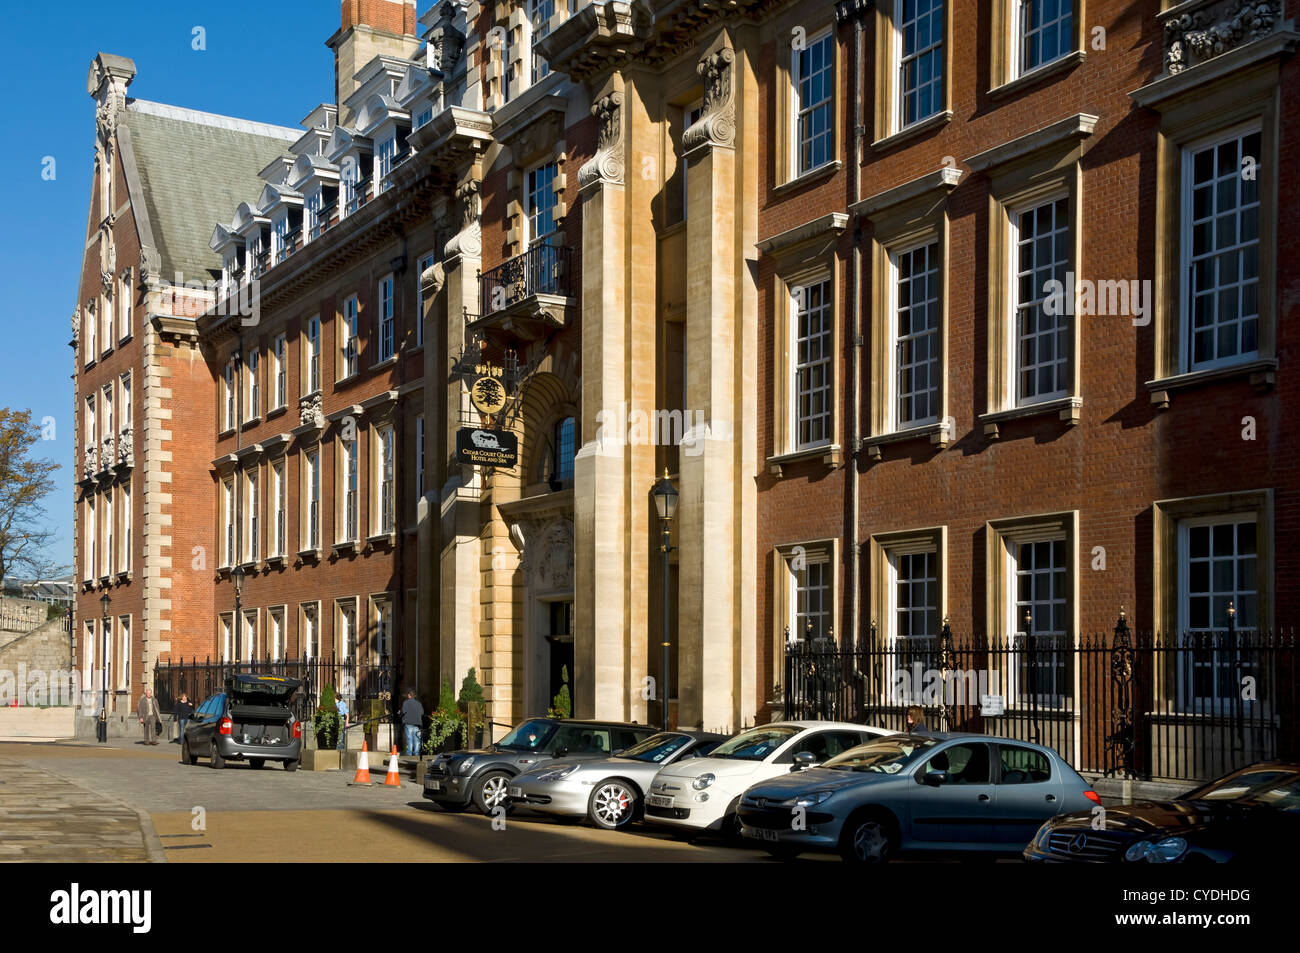 The Grand Hotel and Spa York North Yorkshire England UK United Kingdom GB Great Britain - Stock Image